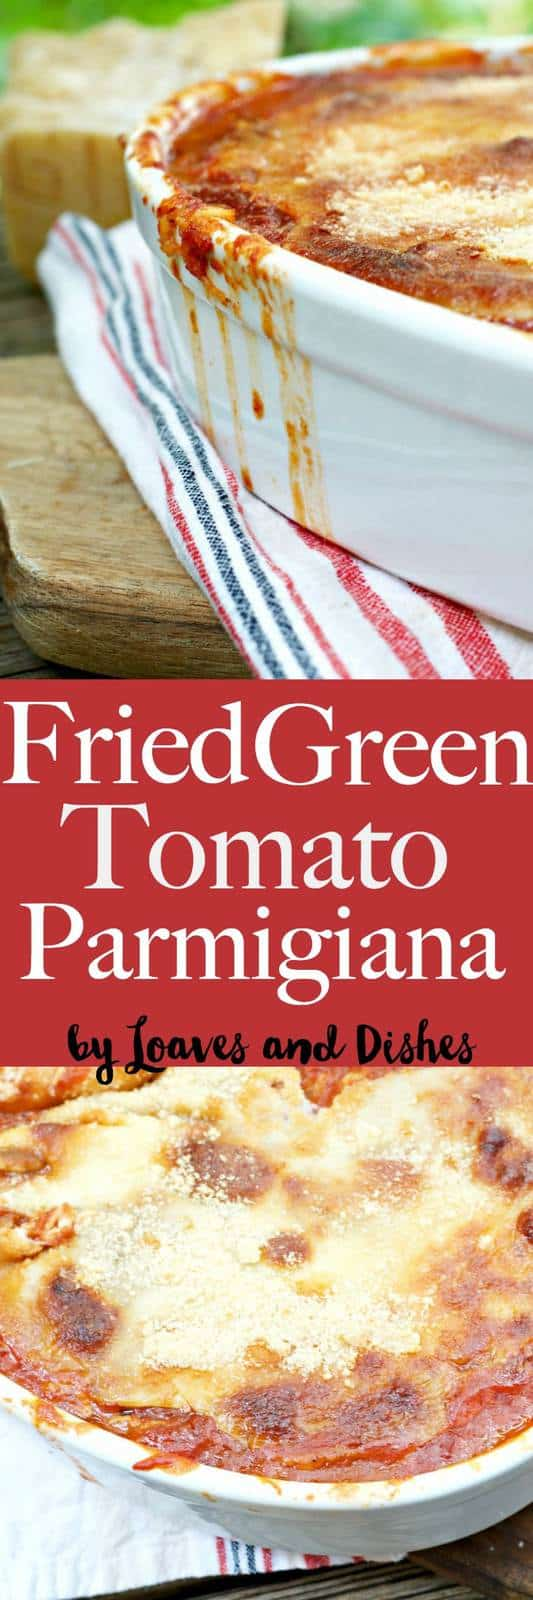 This recipe for Fried Green Tomato Parmigiana is similar to eggplant parm but uses delicious fresh garden green tomatoes for a Southern spin on a classic Italian dish that is yummy with cheese and is easy to do - but does take some time